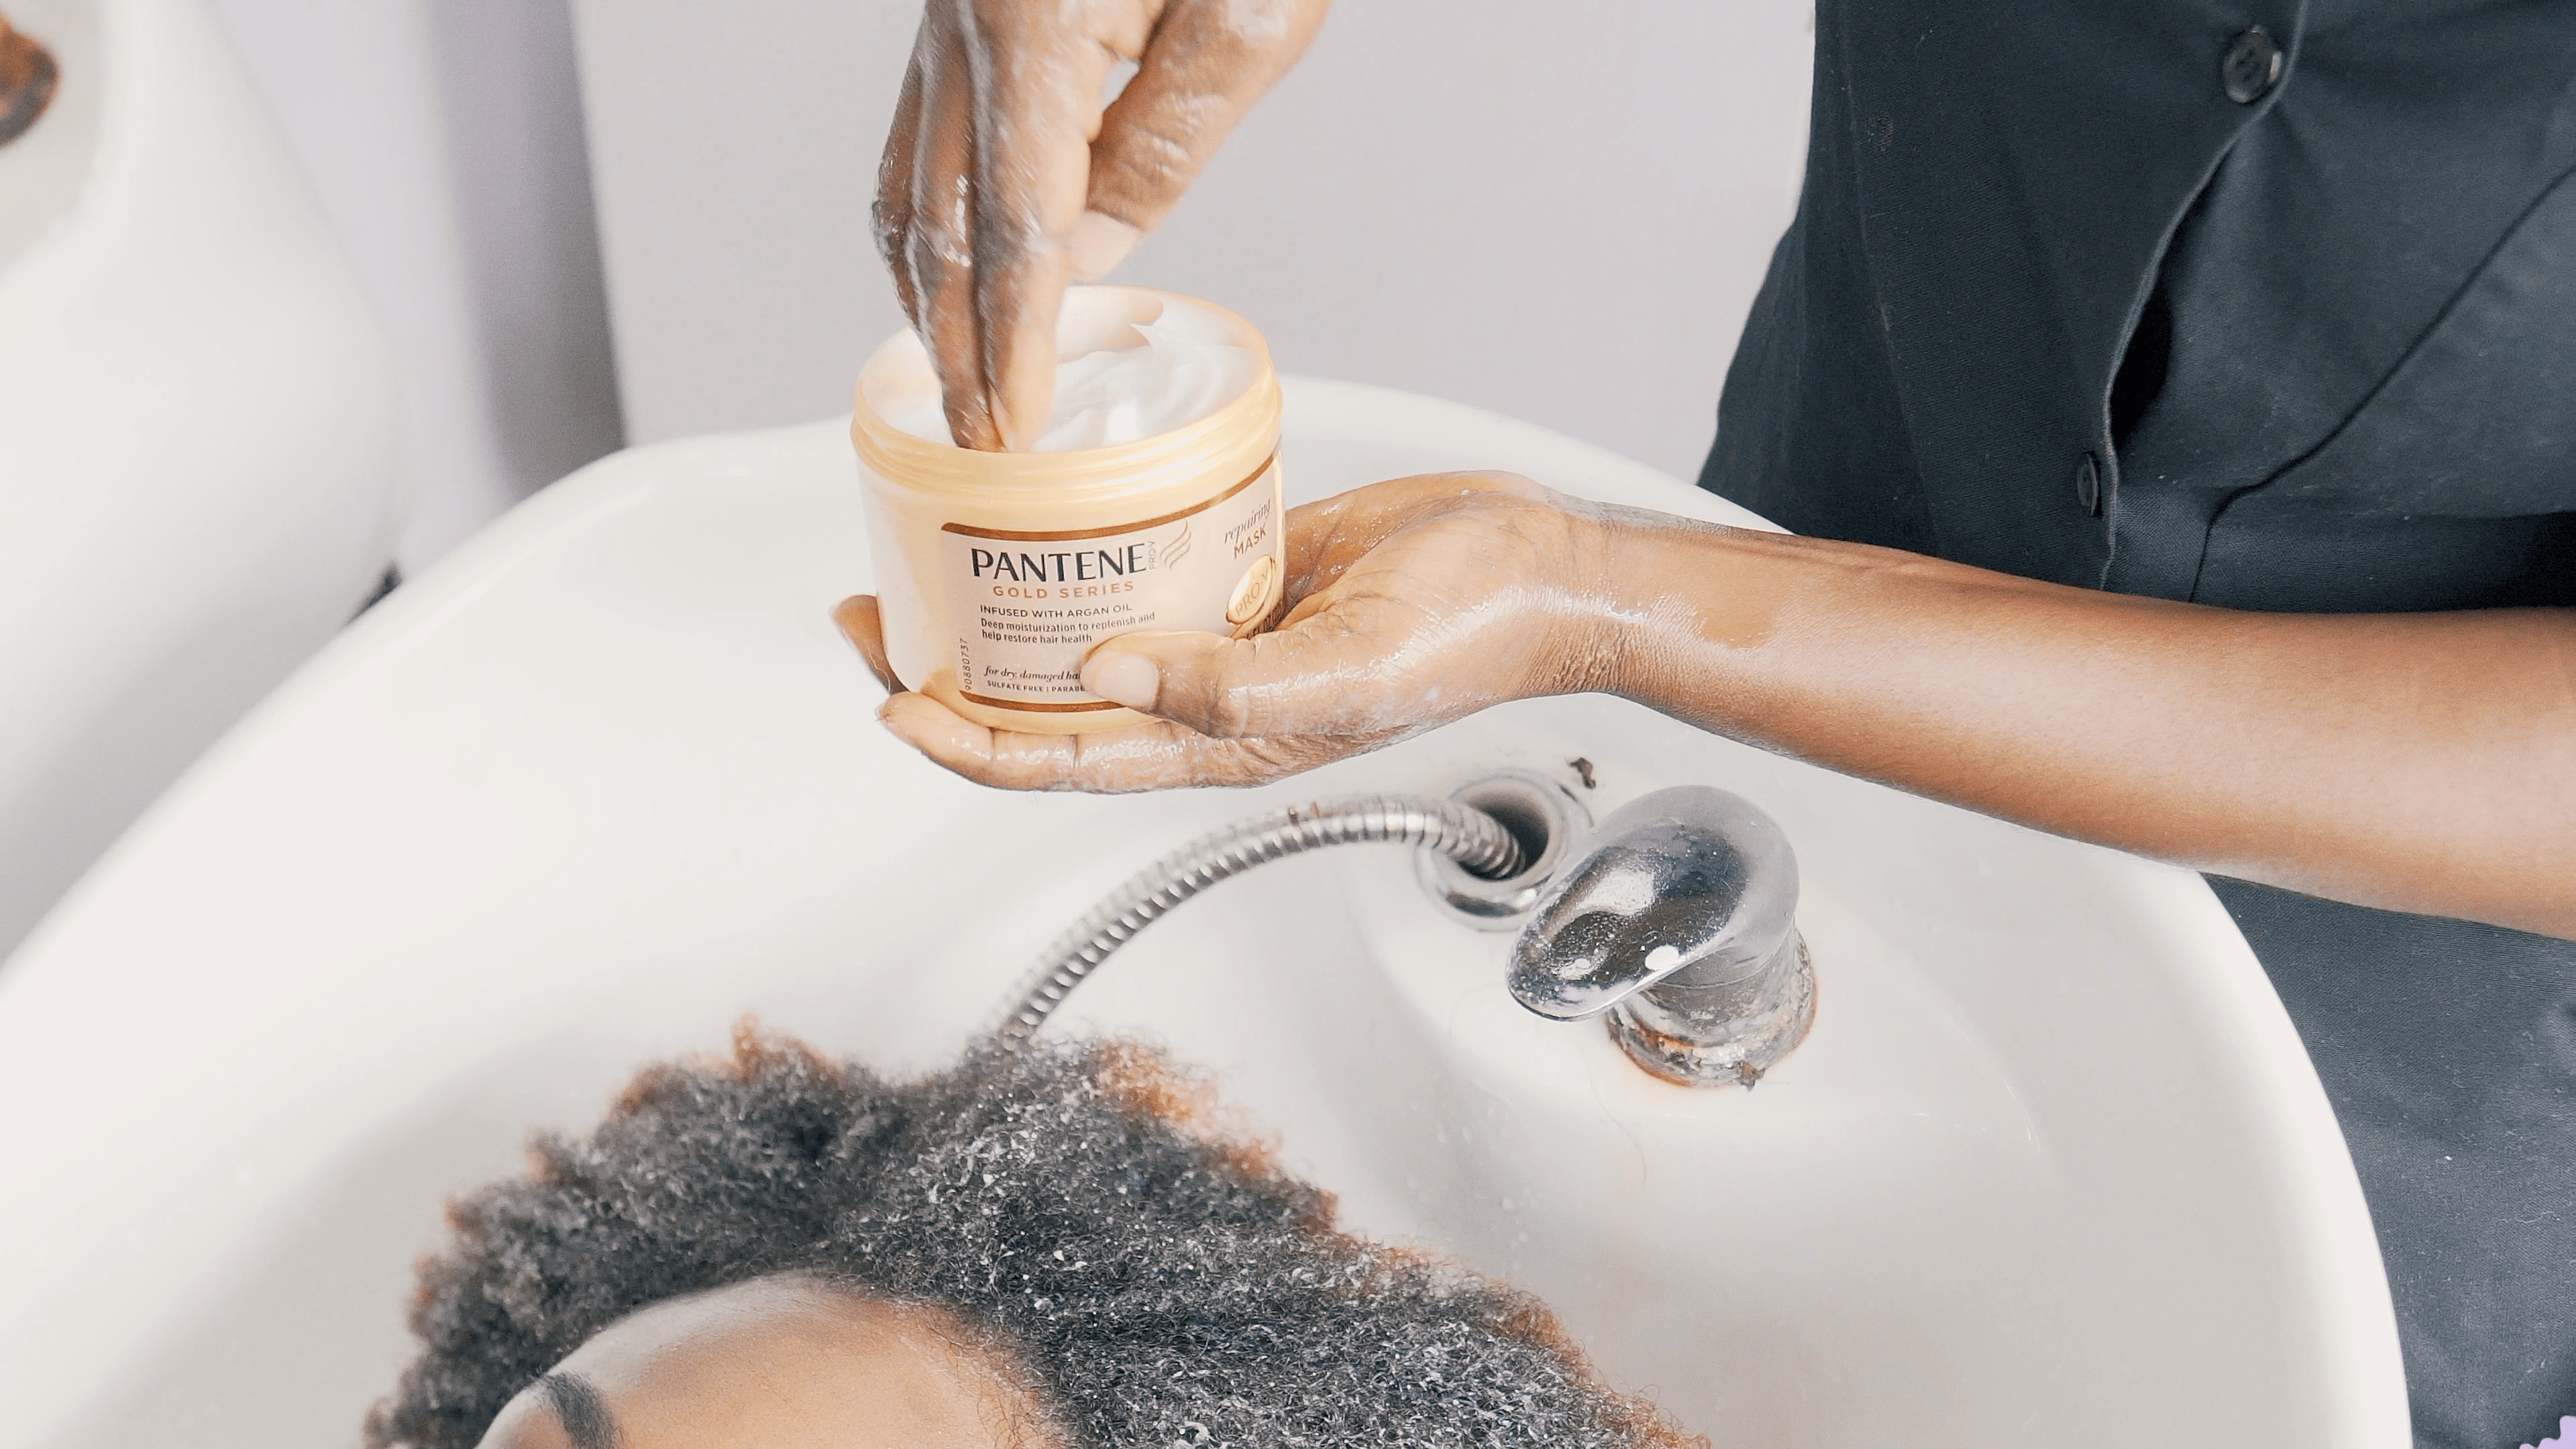 Pantene Gold Series Repairing Mask